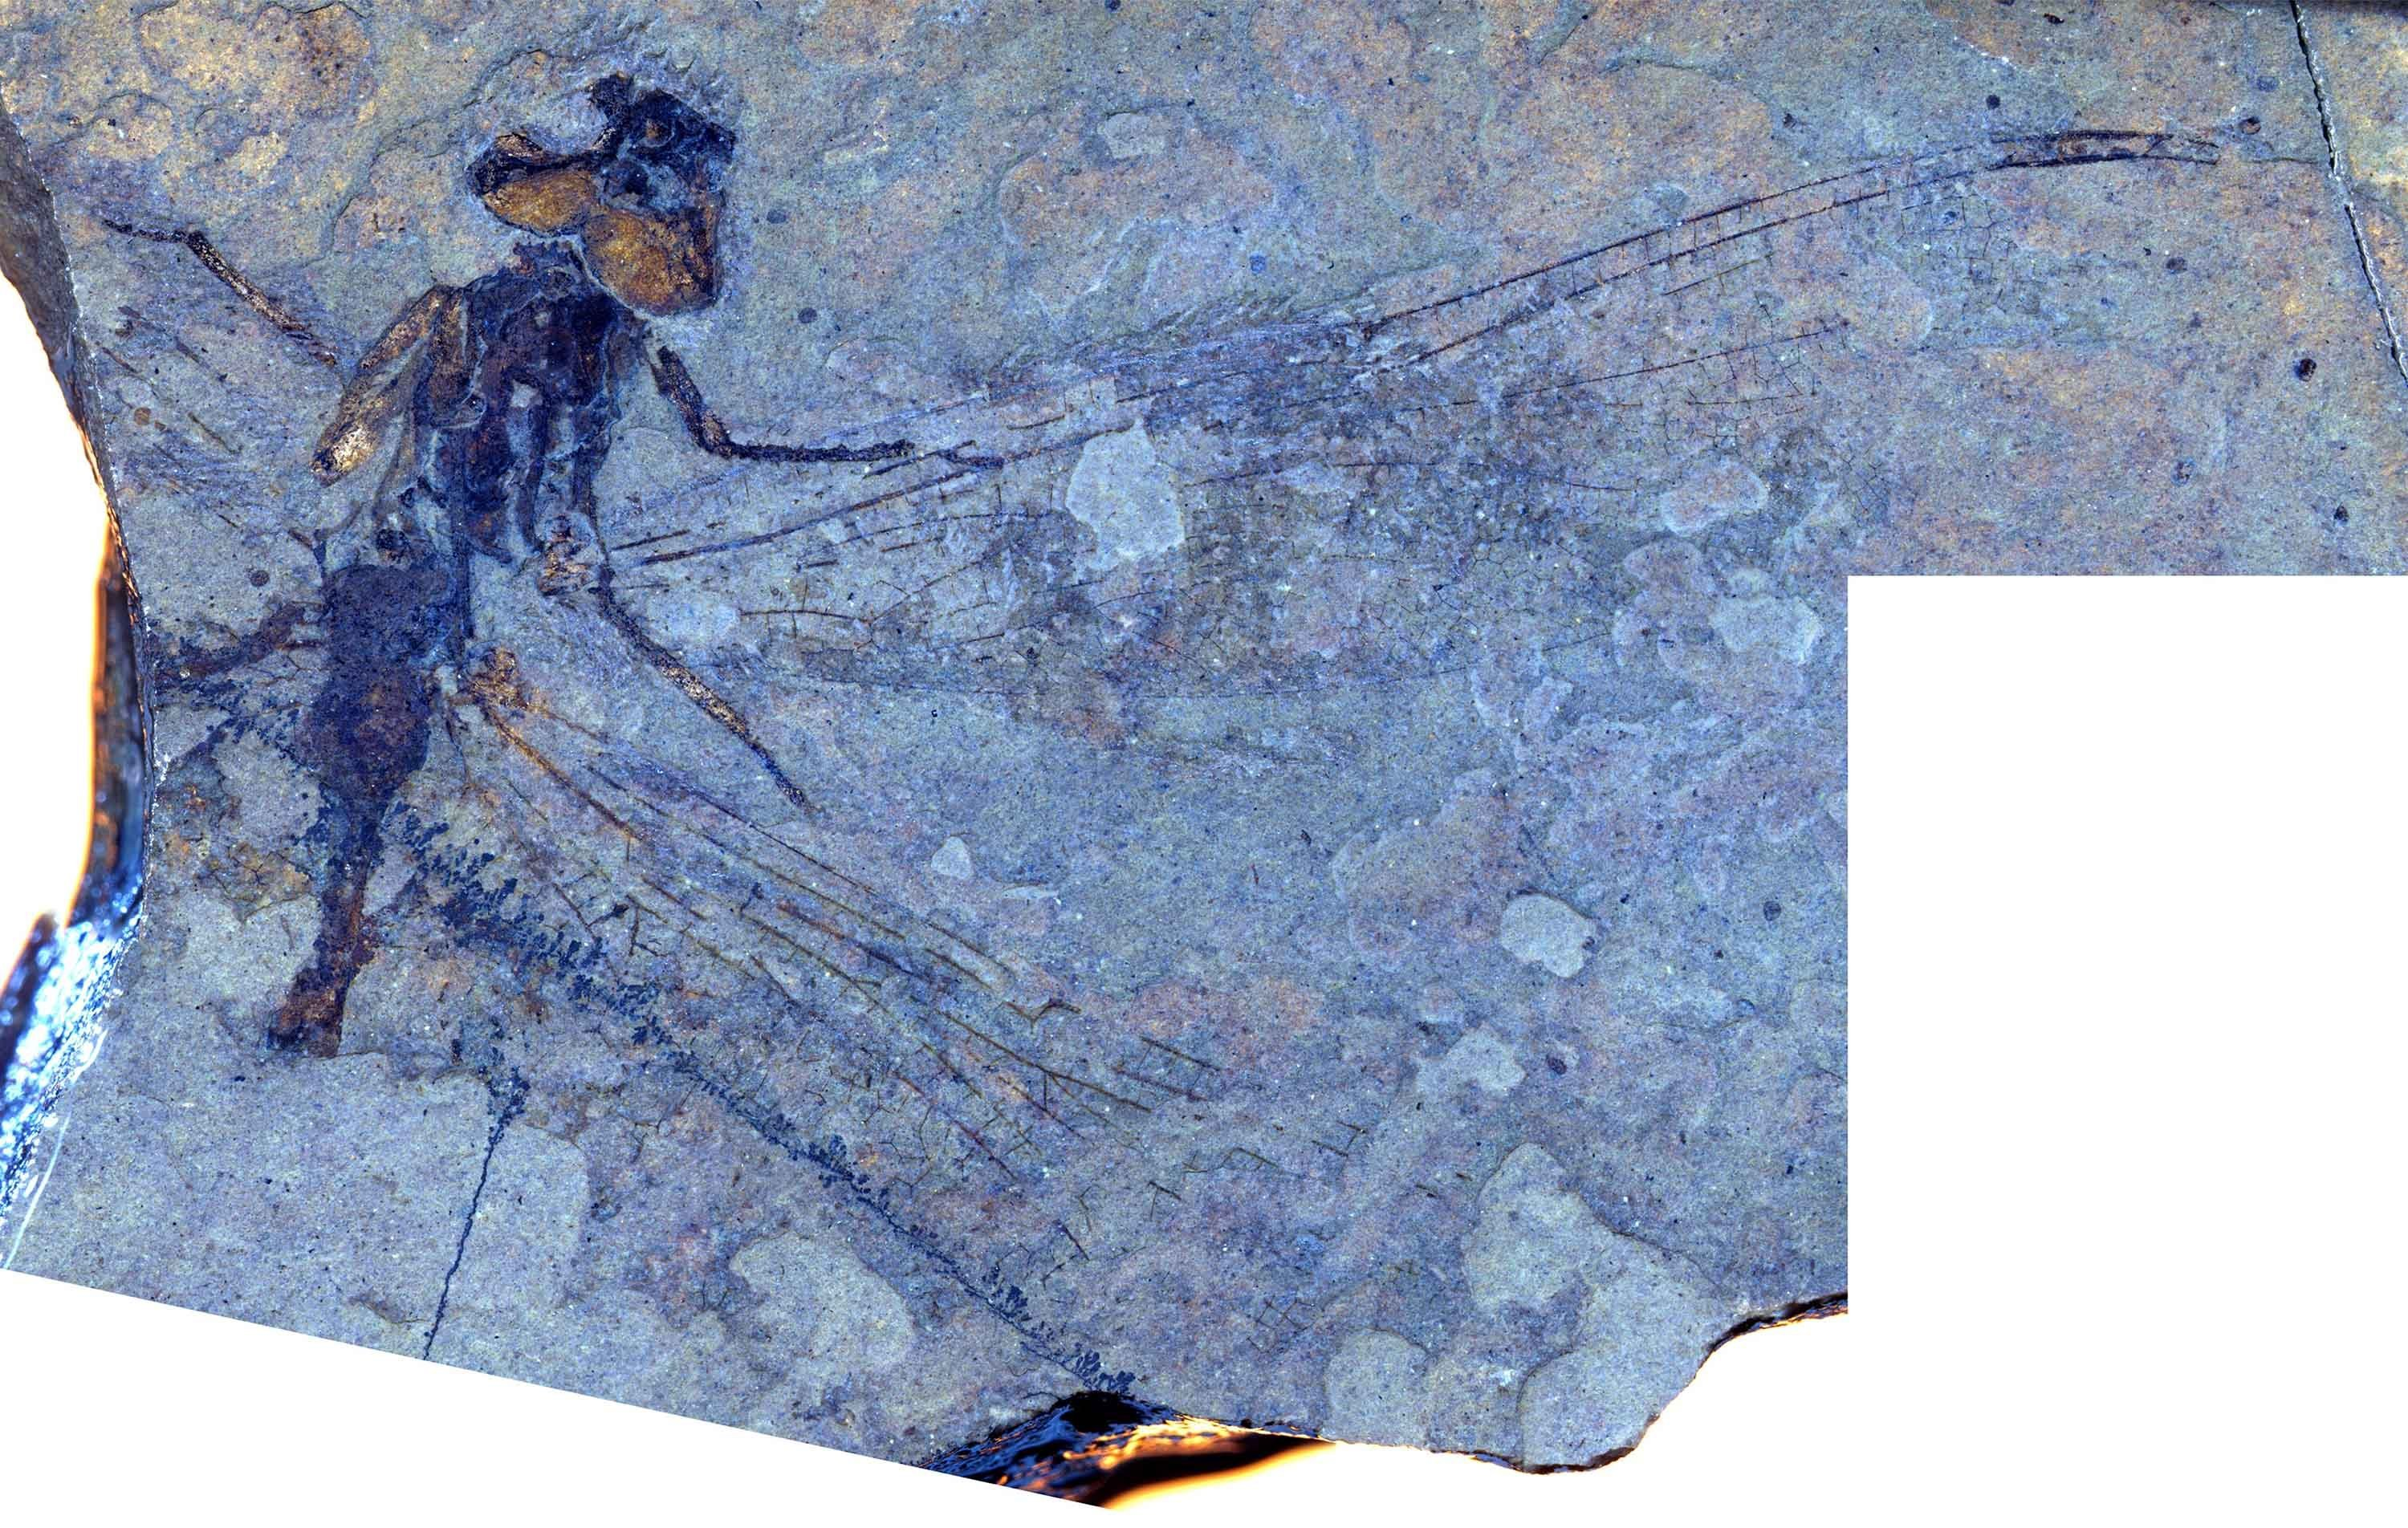 Rare dragonfly fossils could teach us about climate change